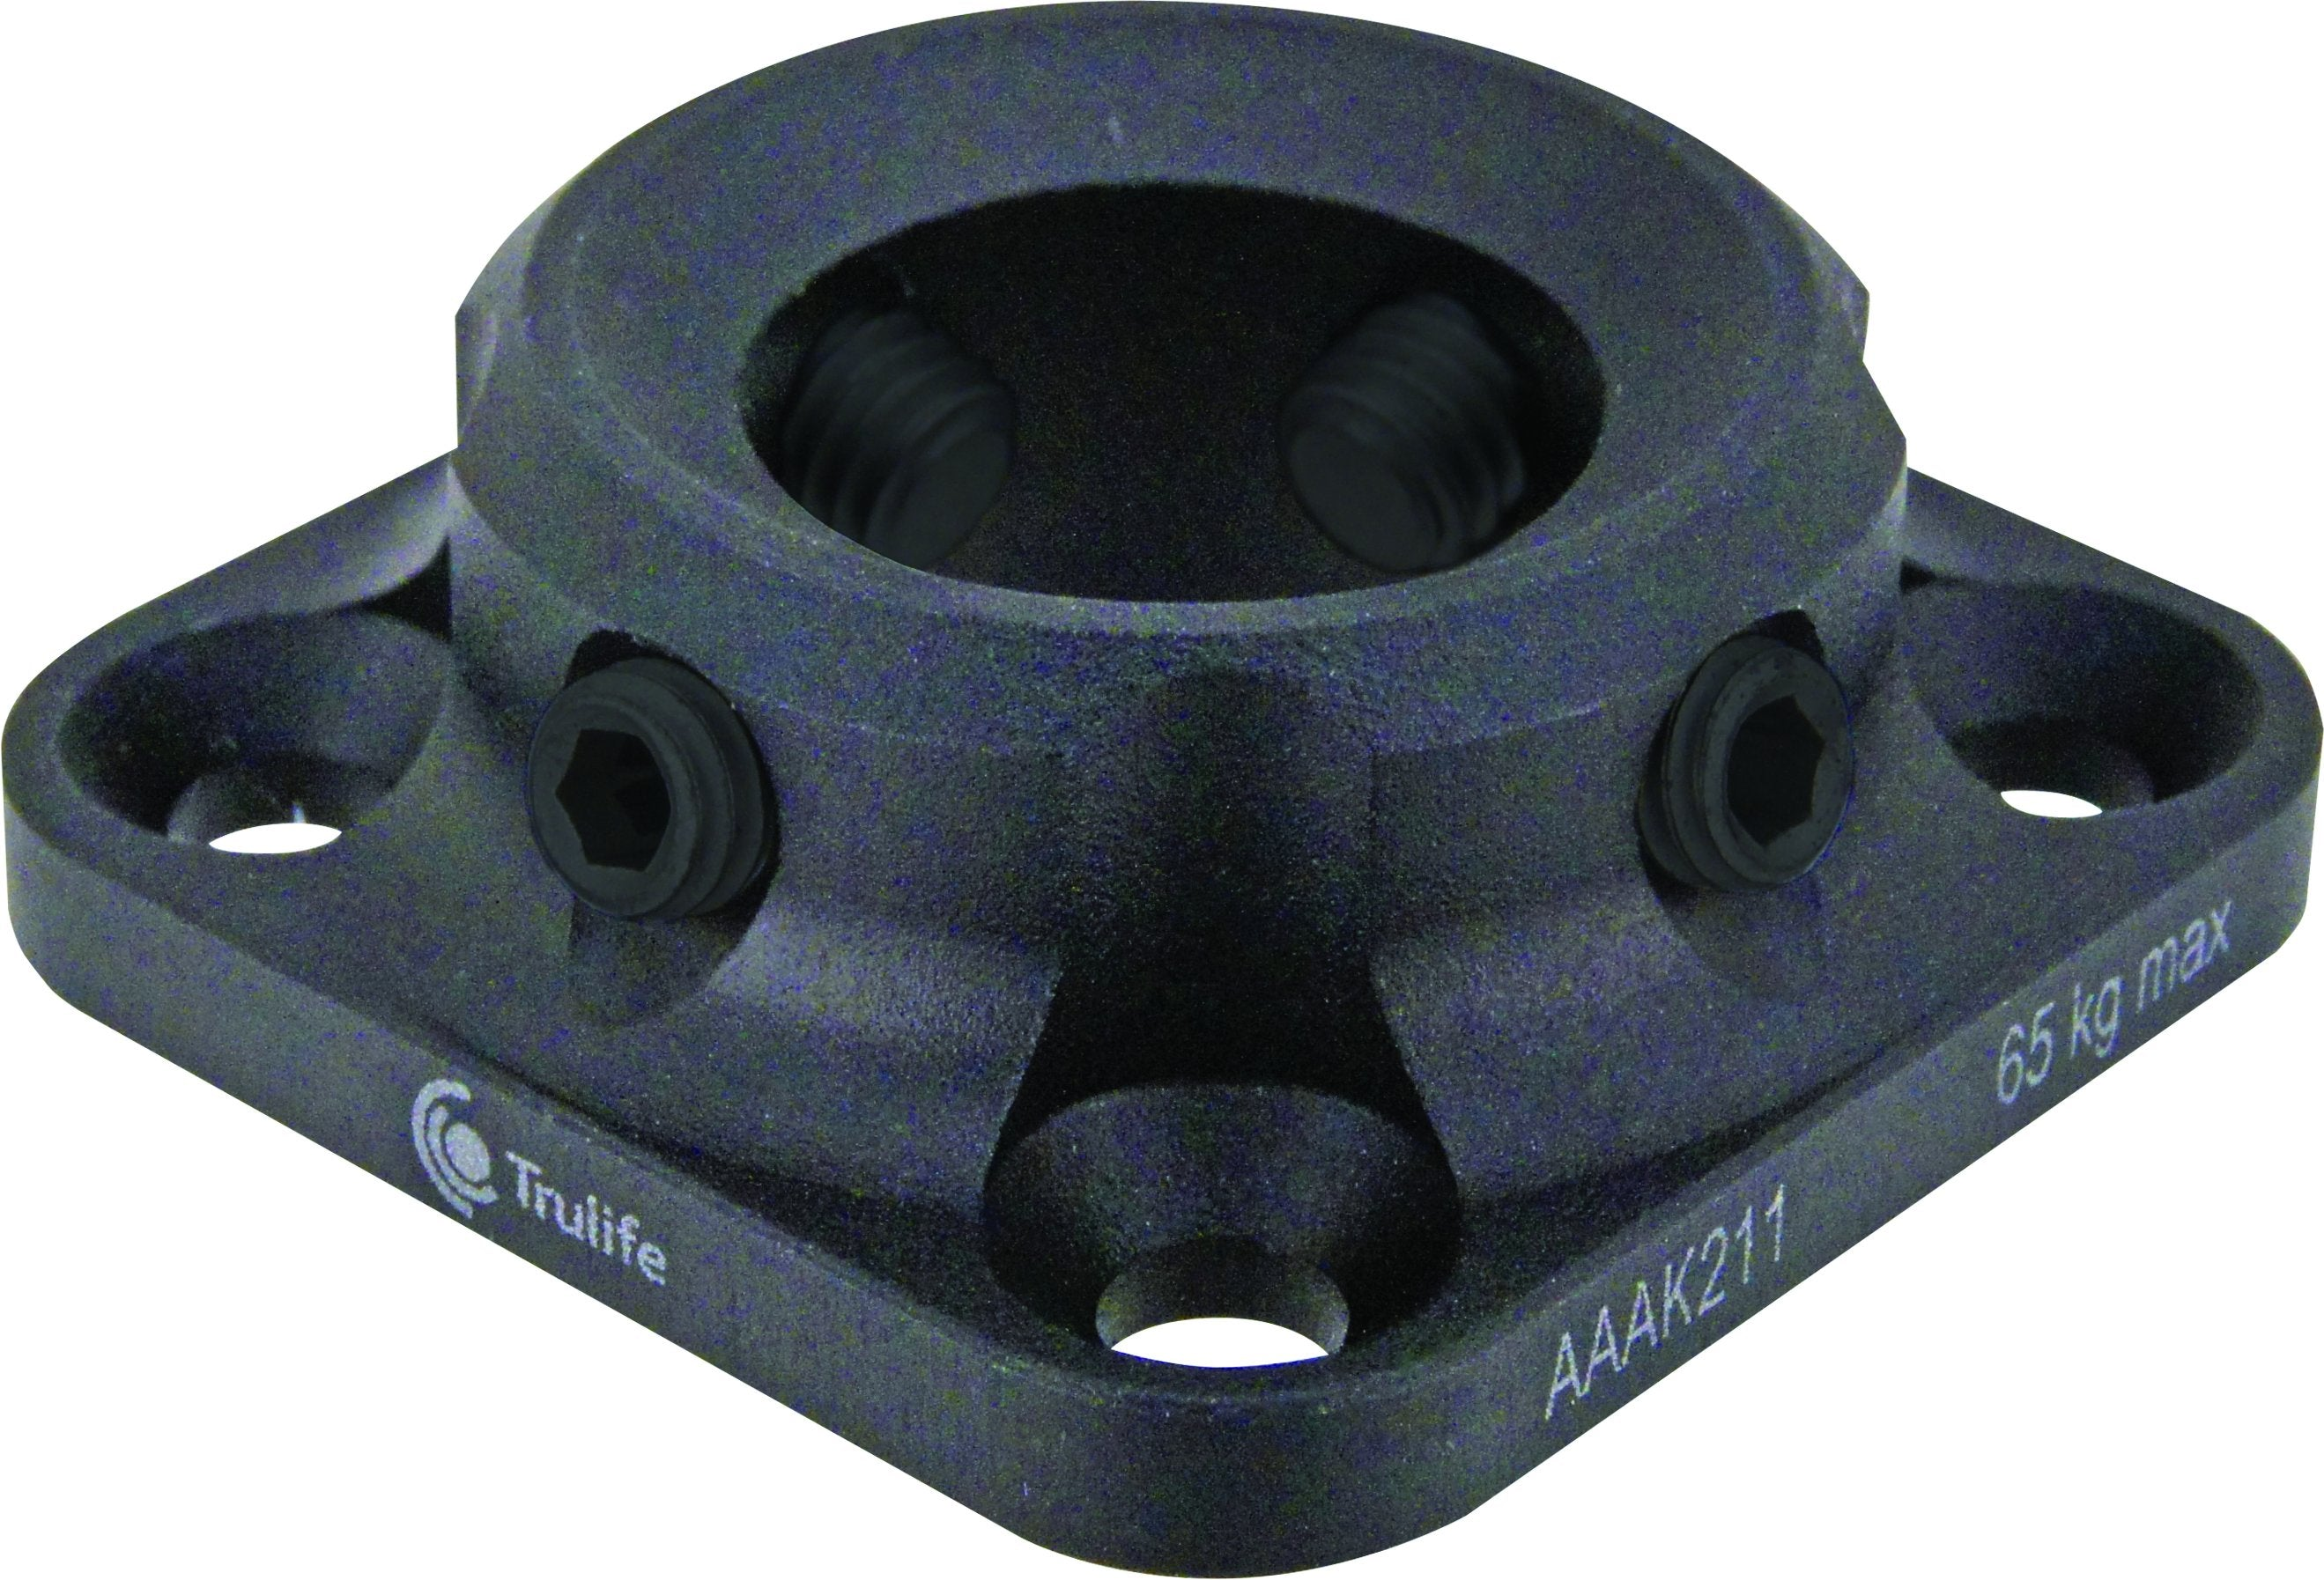 AAAK211 Child's Play 4-Hole Female Adapter